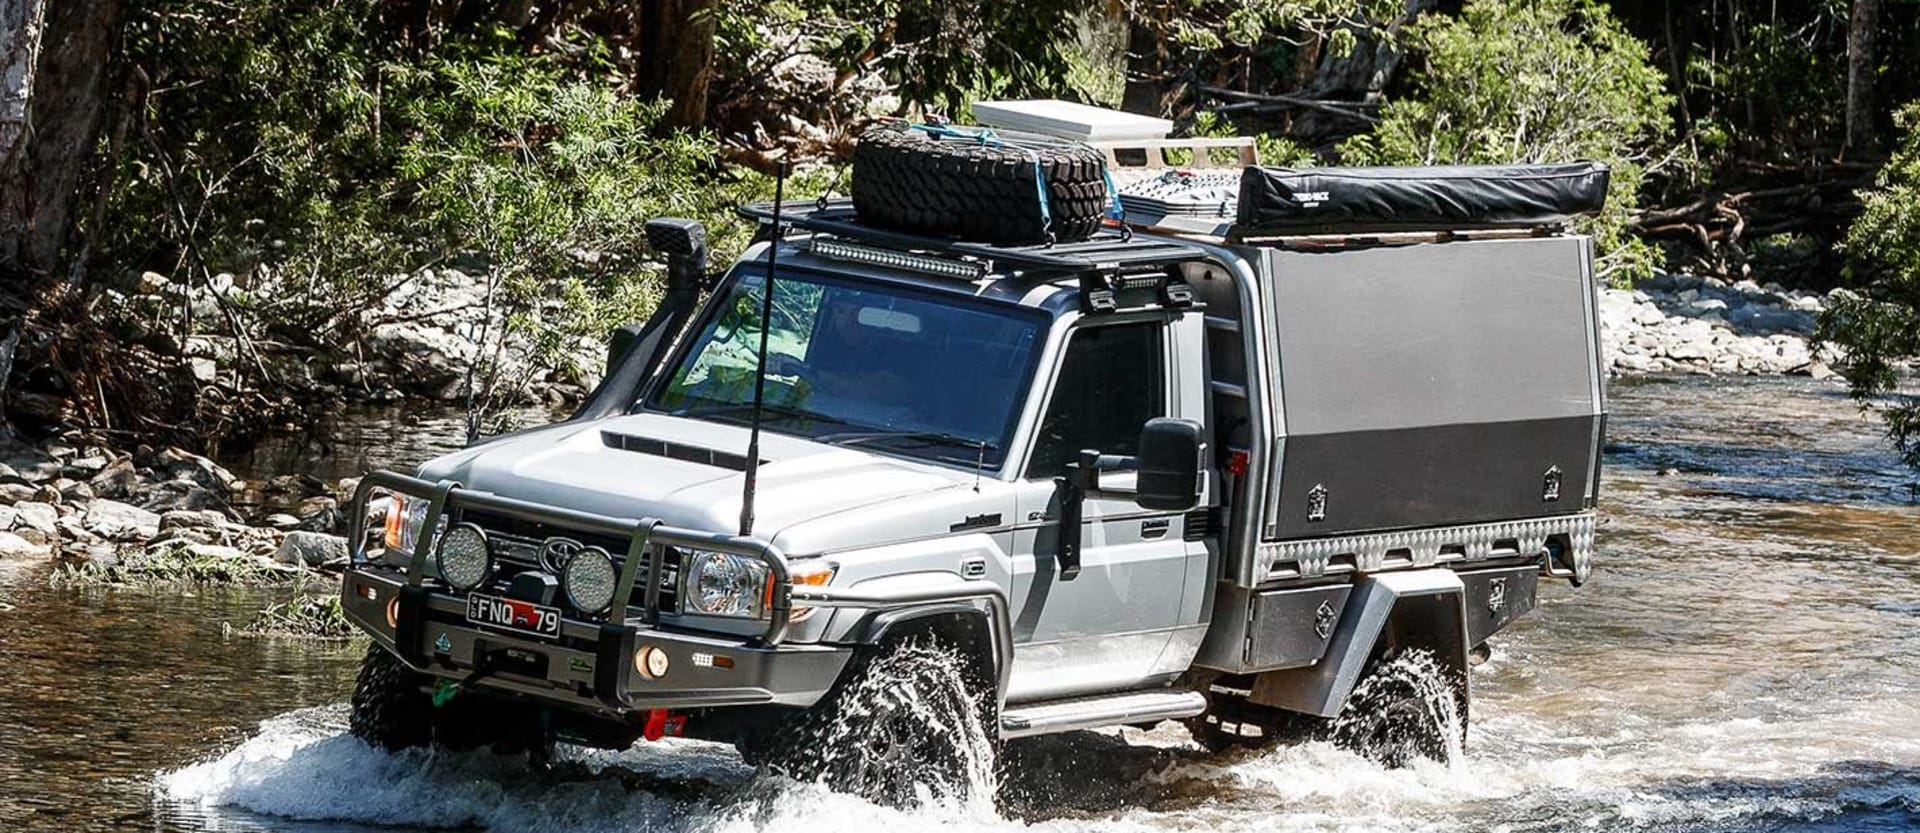 Custom portal-axled Toyota Land Cruiser 79 review